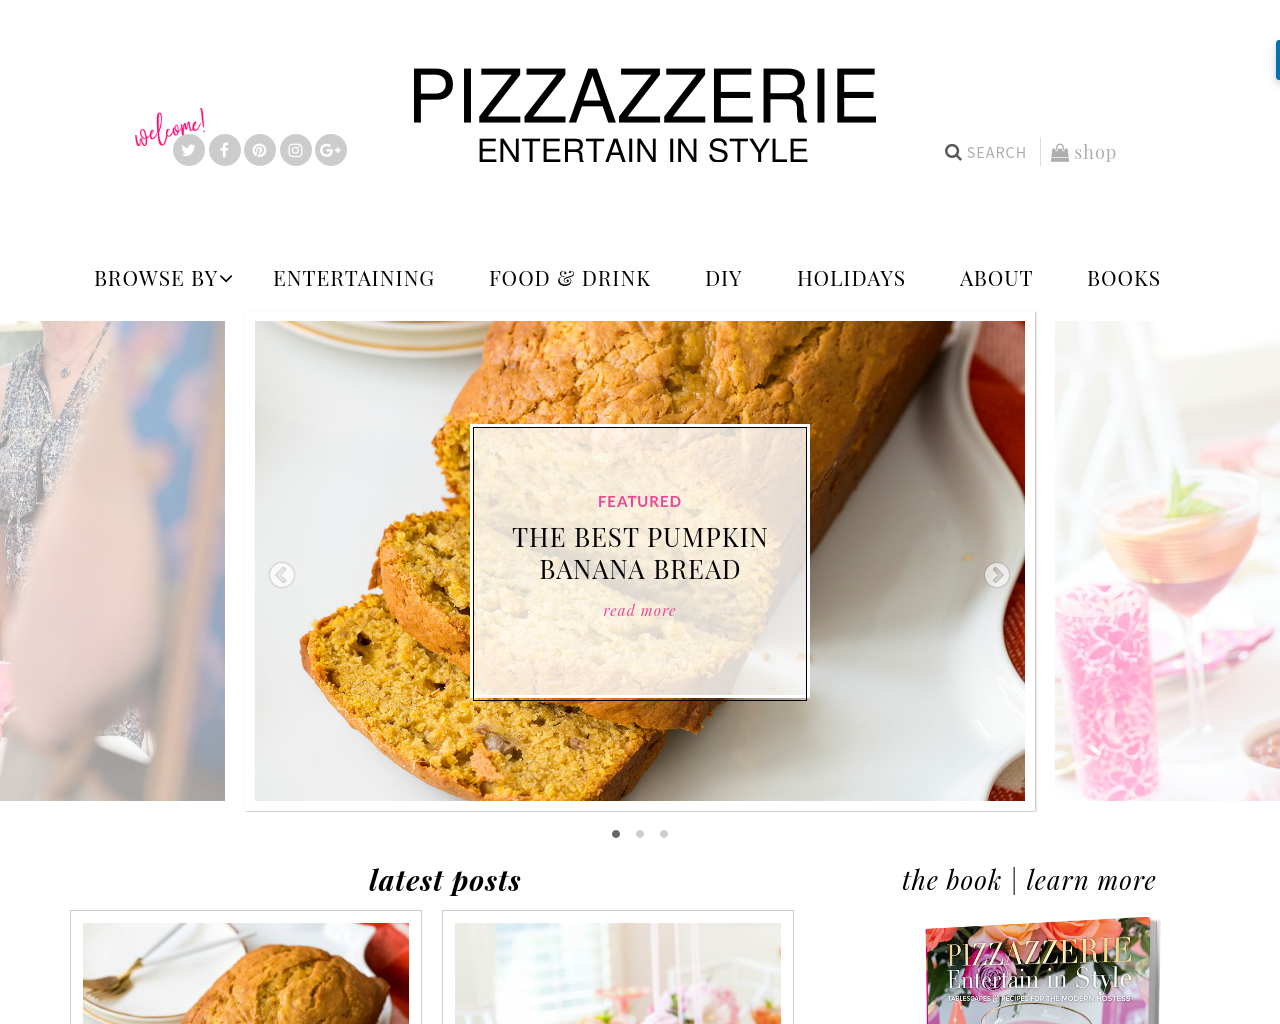 Pizzazzerie-Advertising-Reviews-Pricing